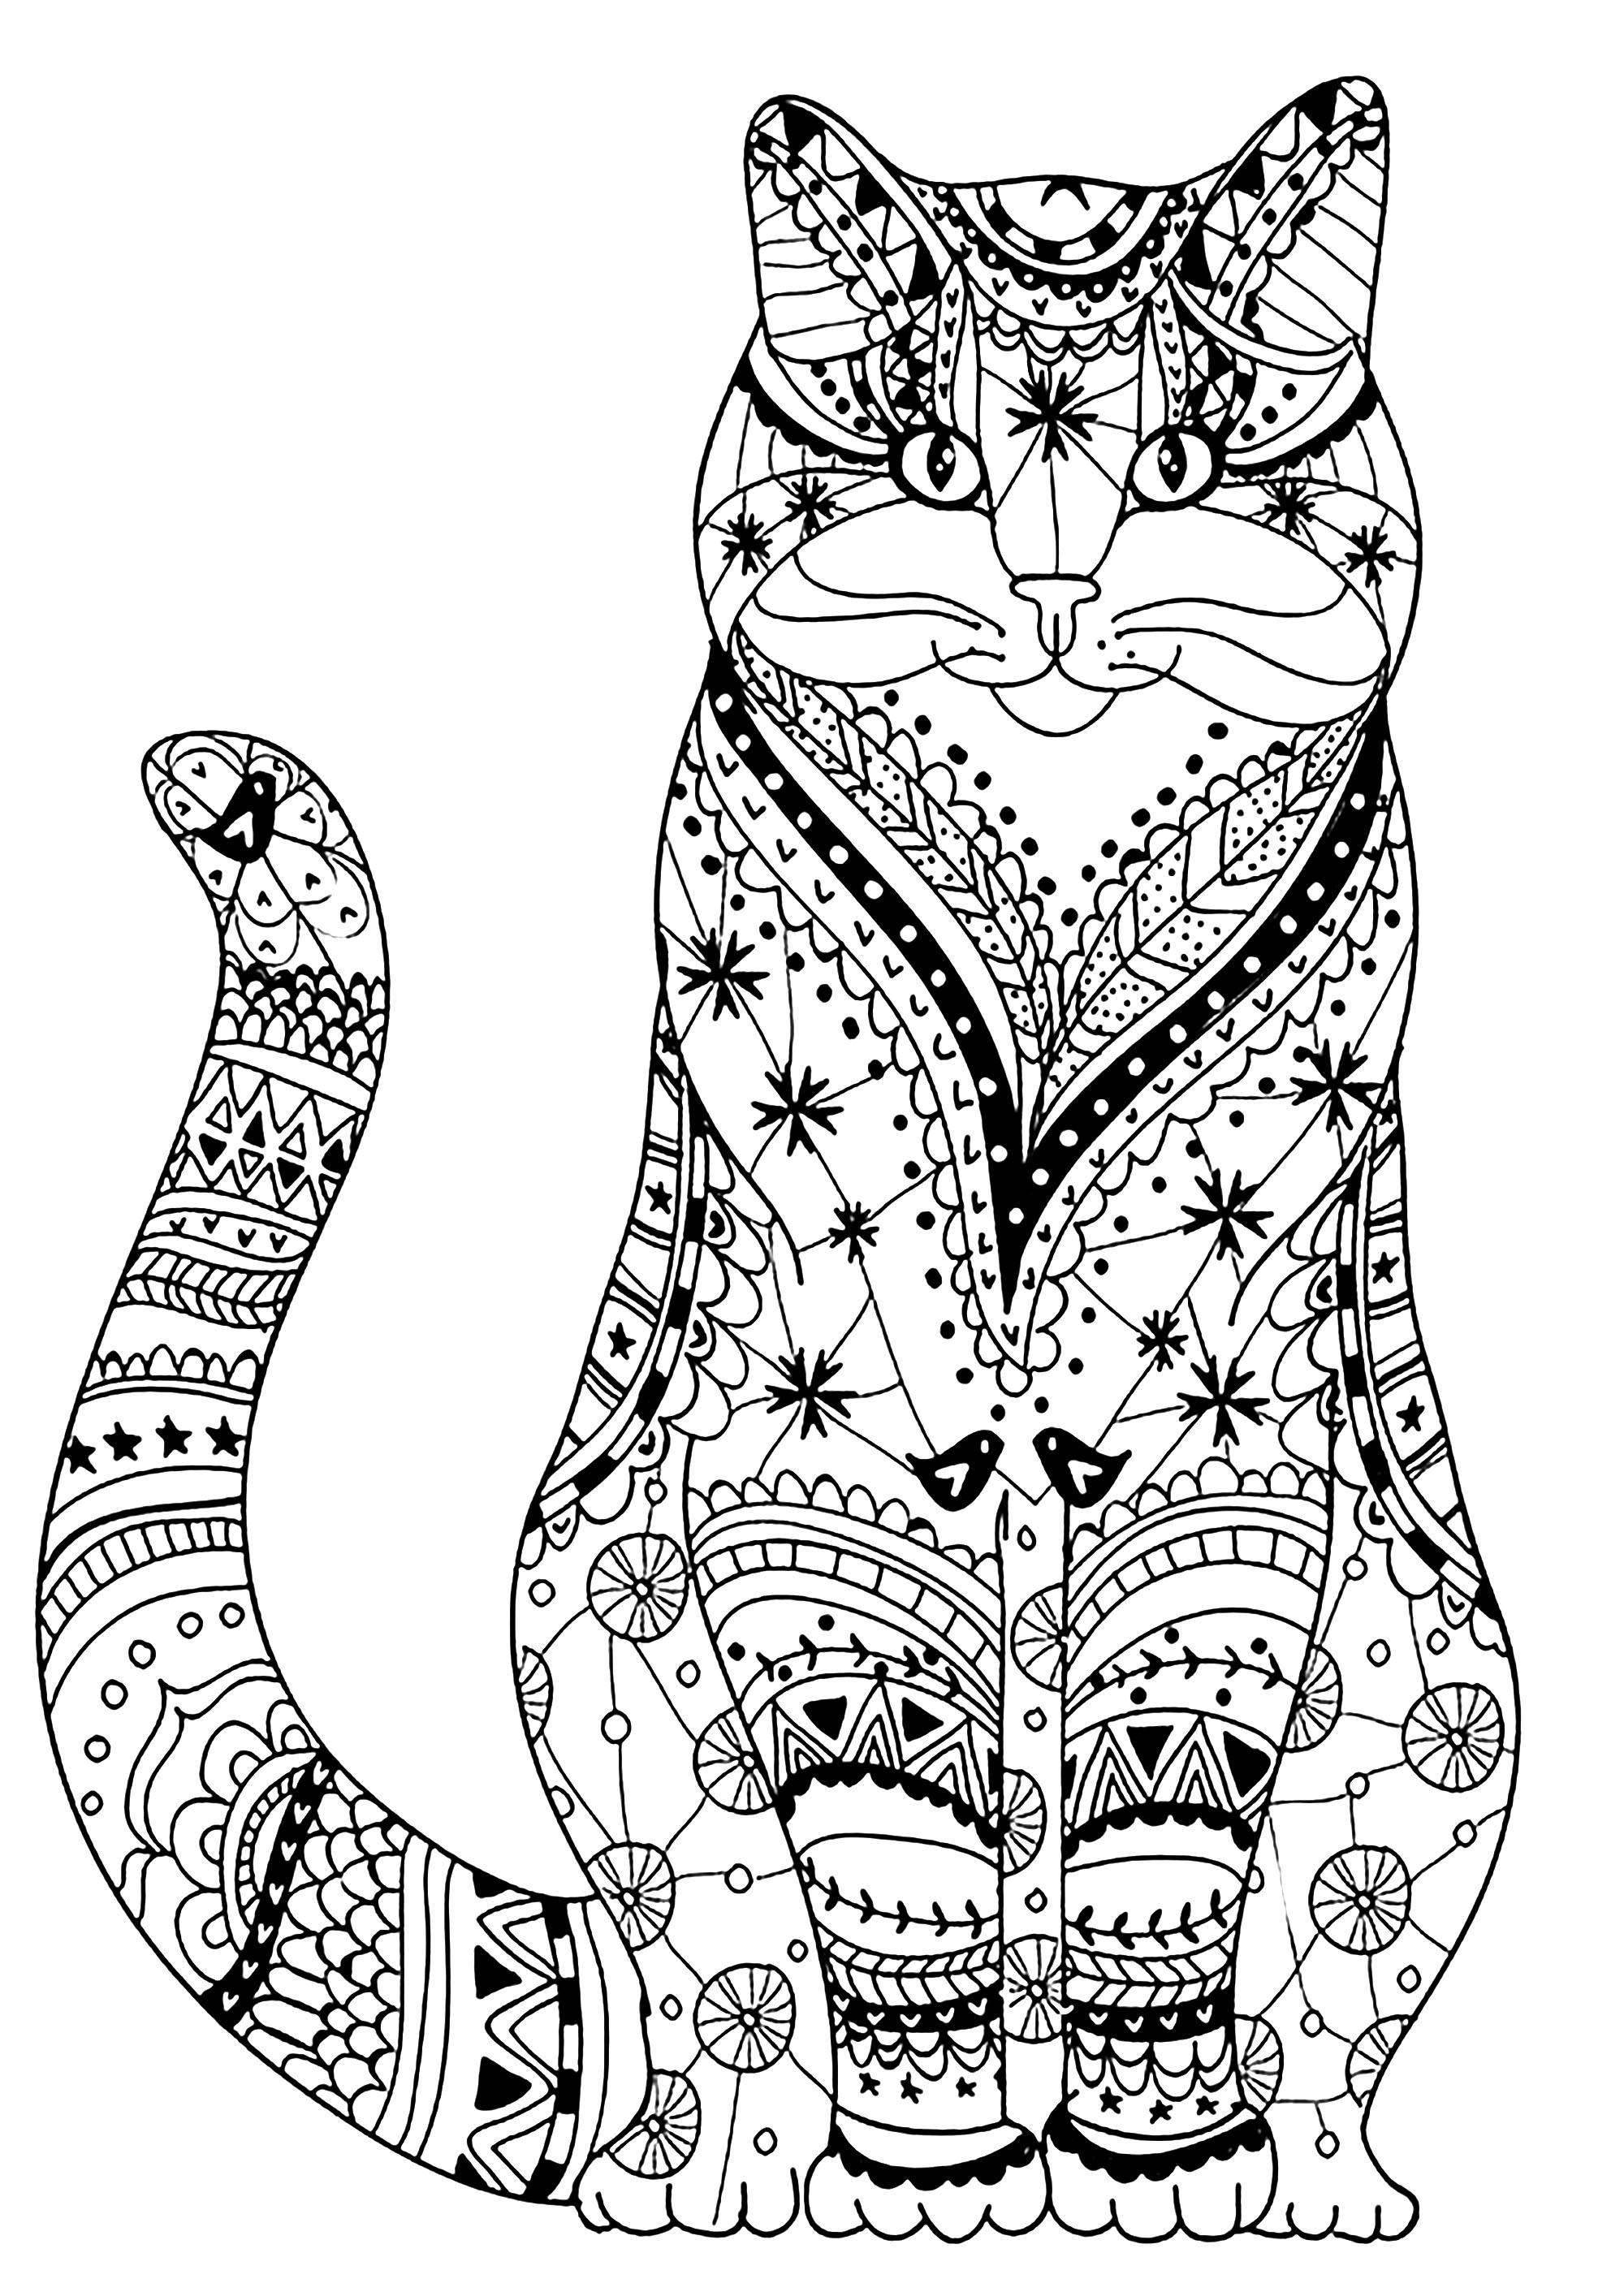 coloring worksheets cat very wise cat cats adult coloring pages coloring cat worksheets